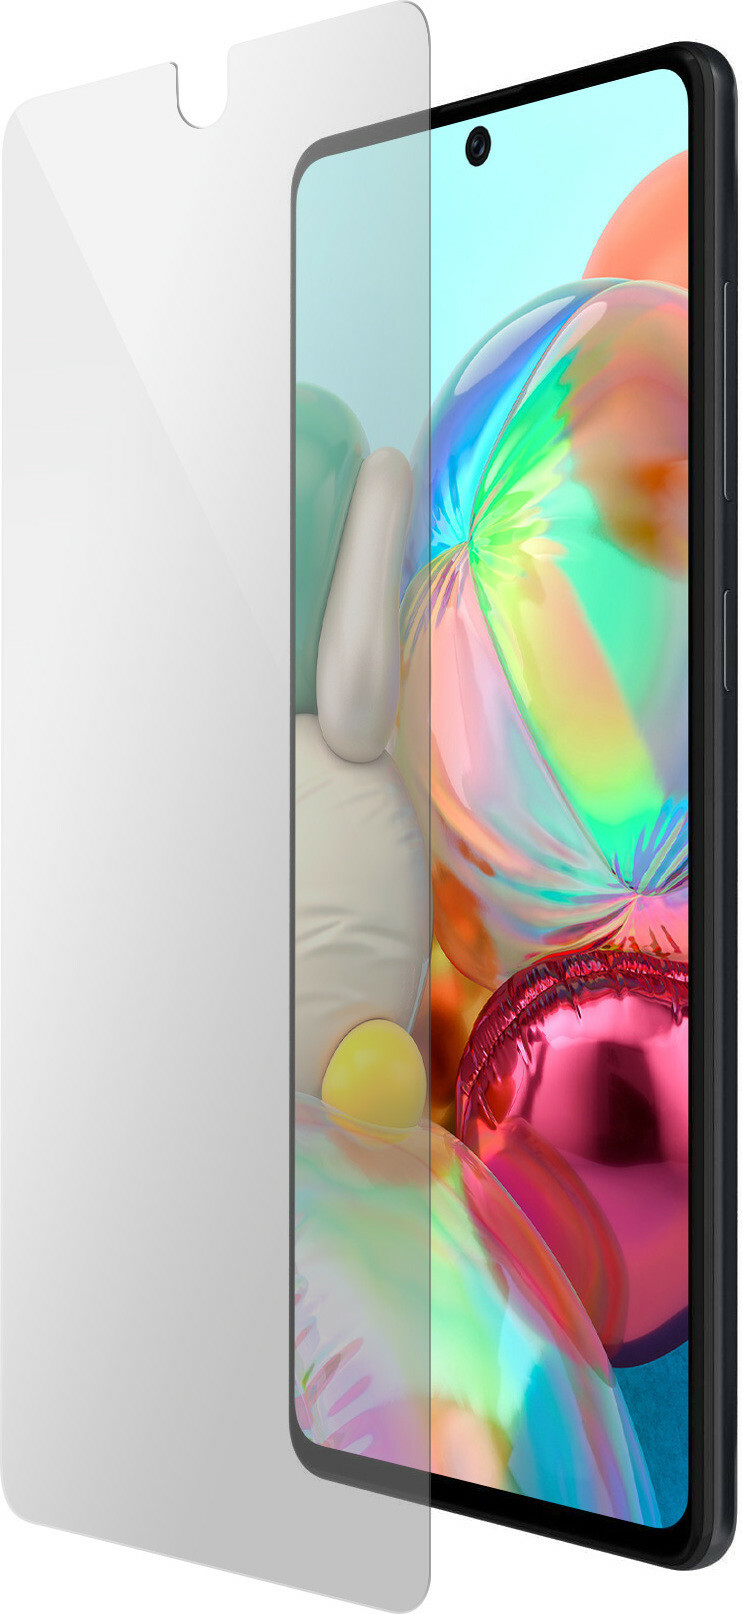 Mobiparts Regular Tempered Glass Samsung Galaxy A71 (2020)